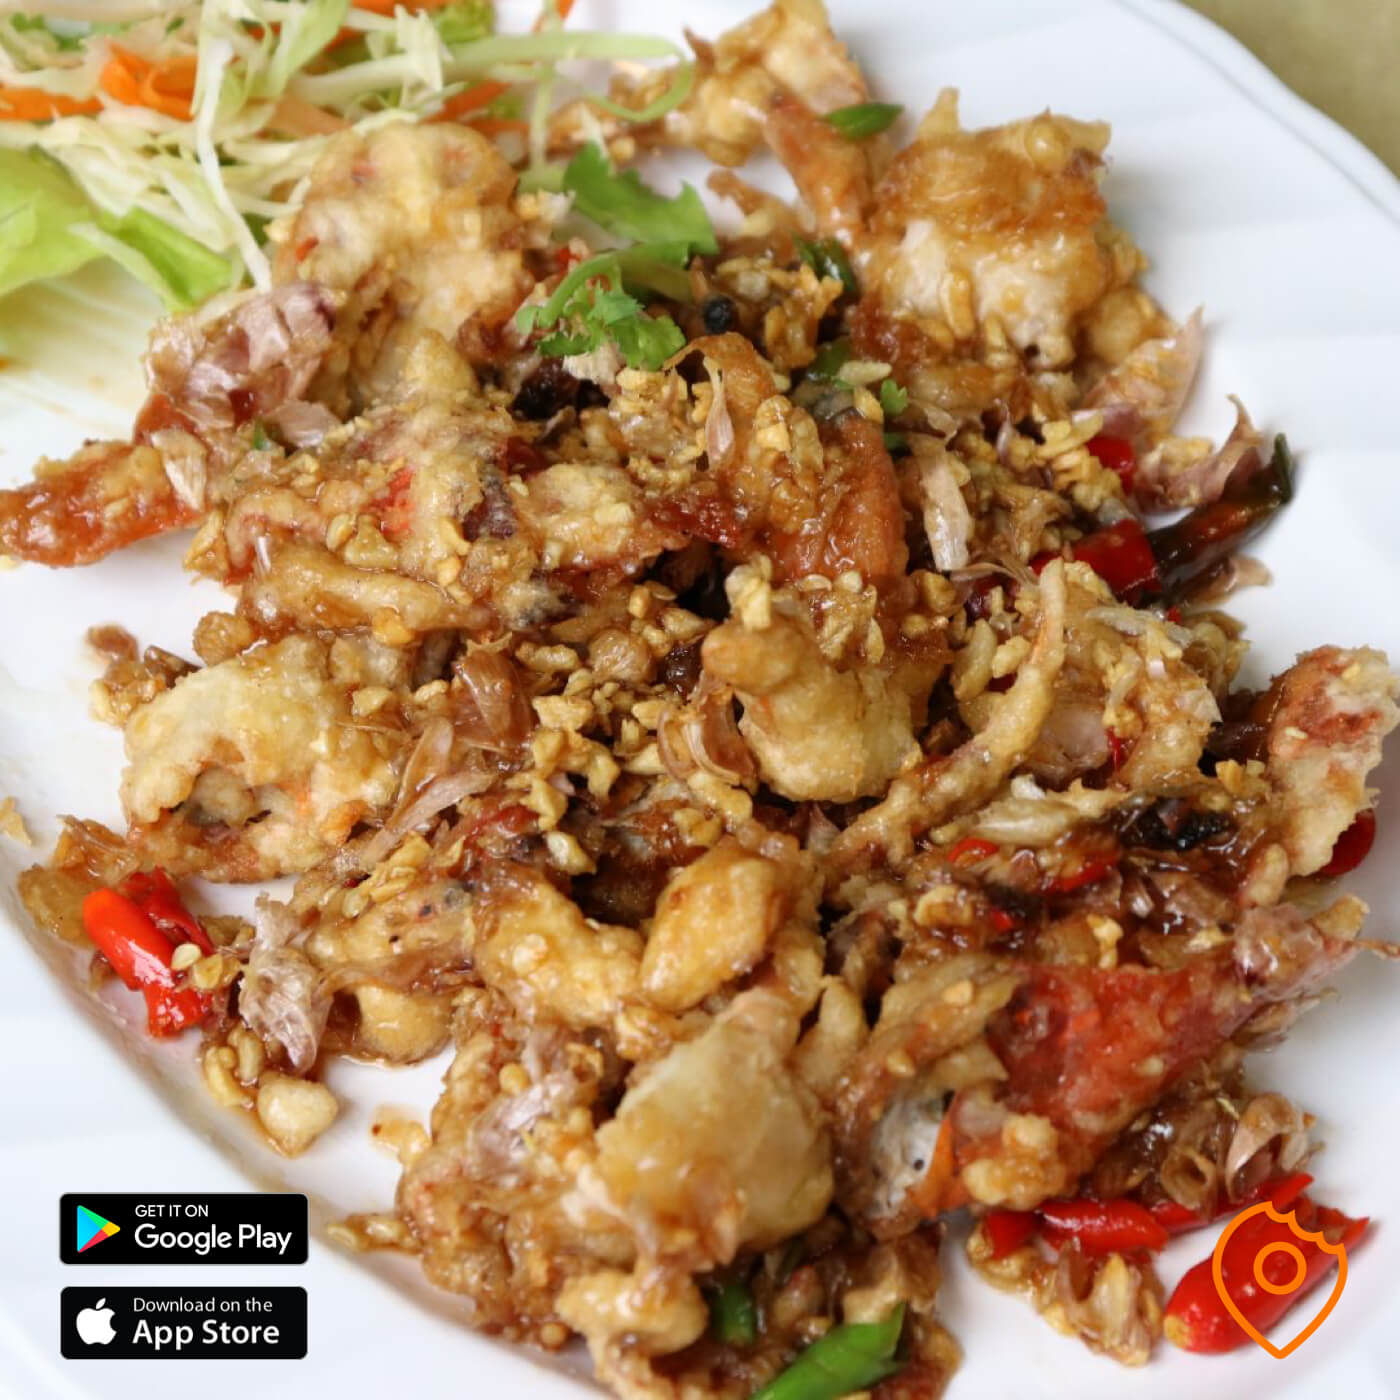 Fried Soft Crab with Garlic and Pepper